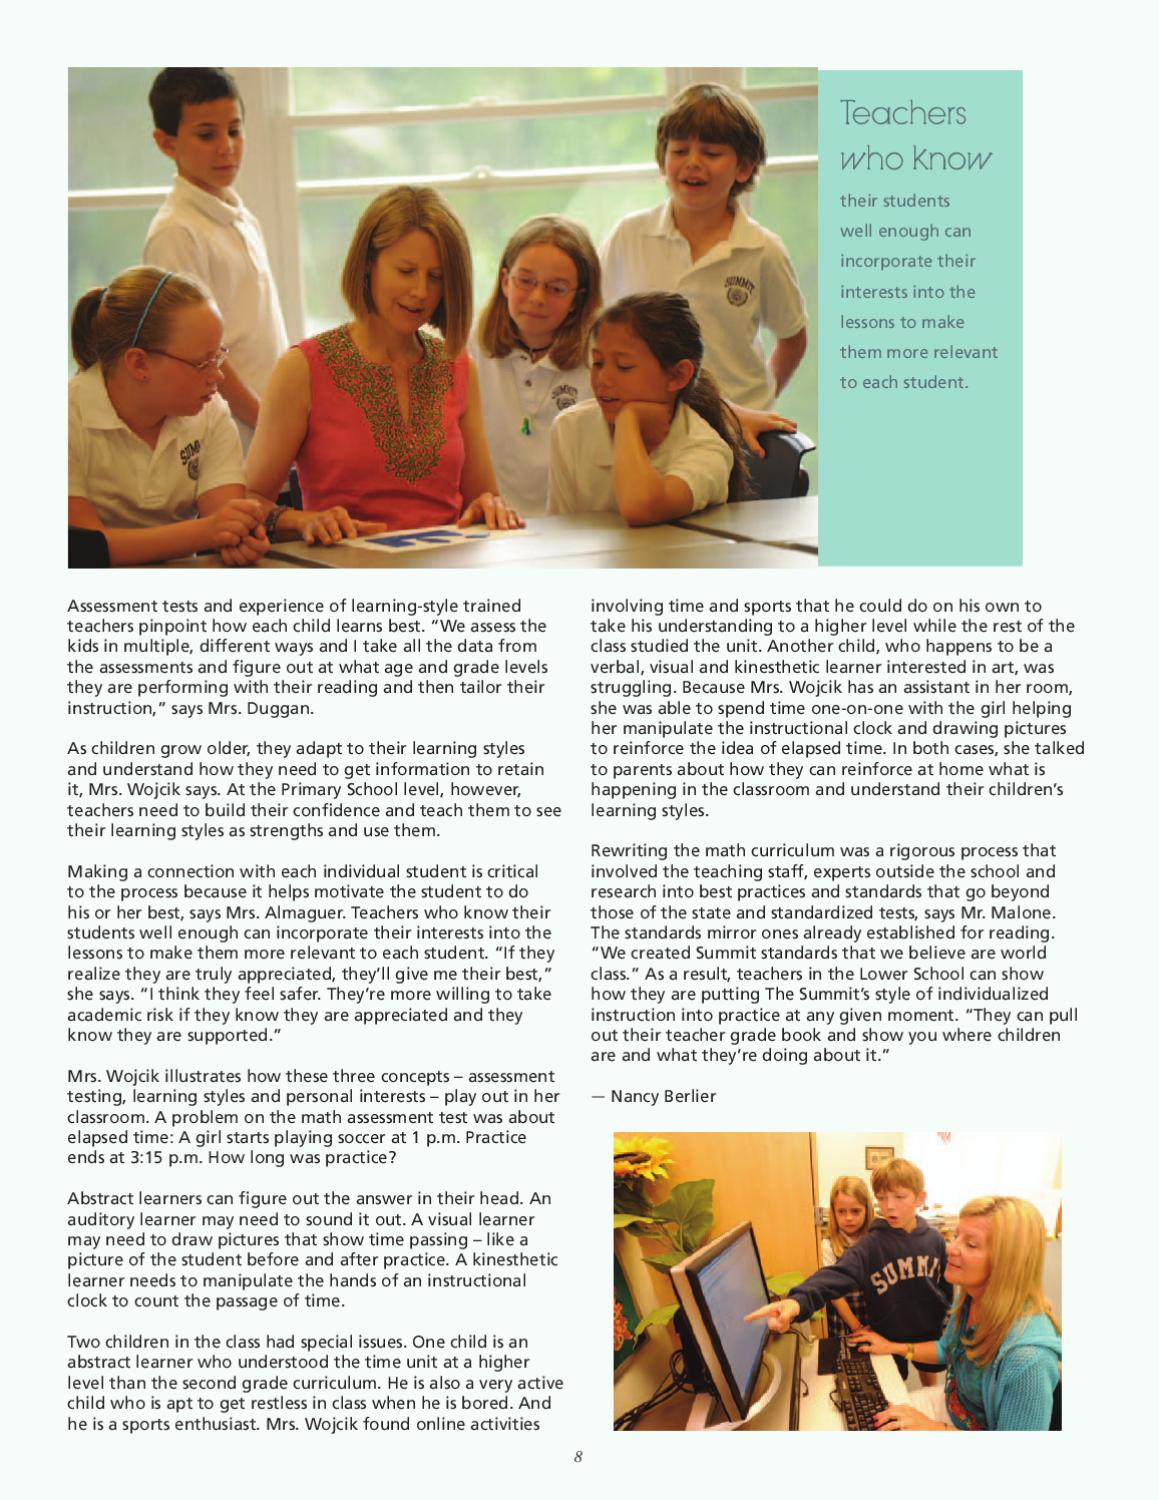 Enough With Learning Styles Already >> Annual Report 2009 2010 By The Summit Country Day School Issuu